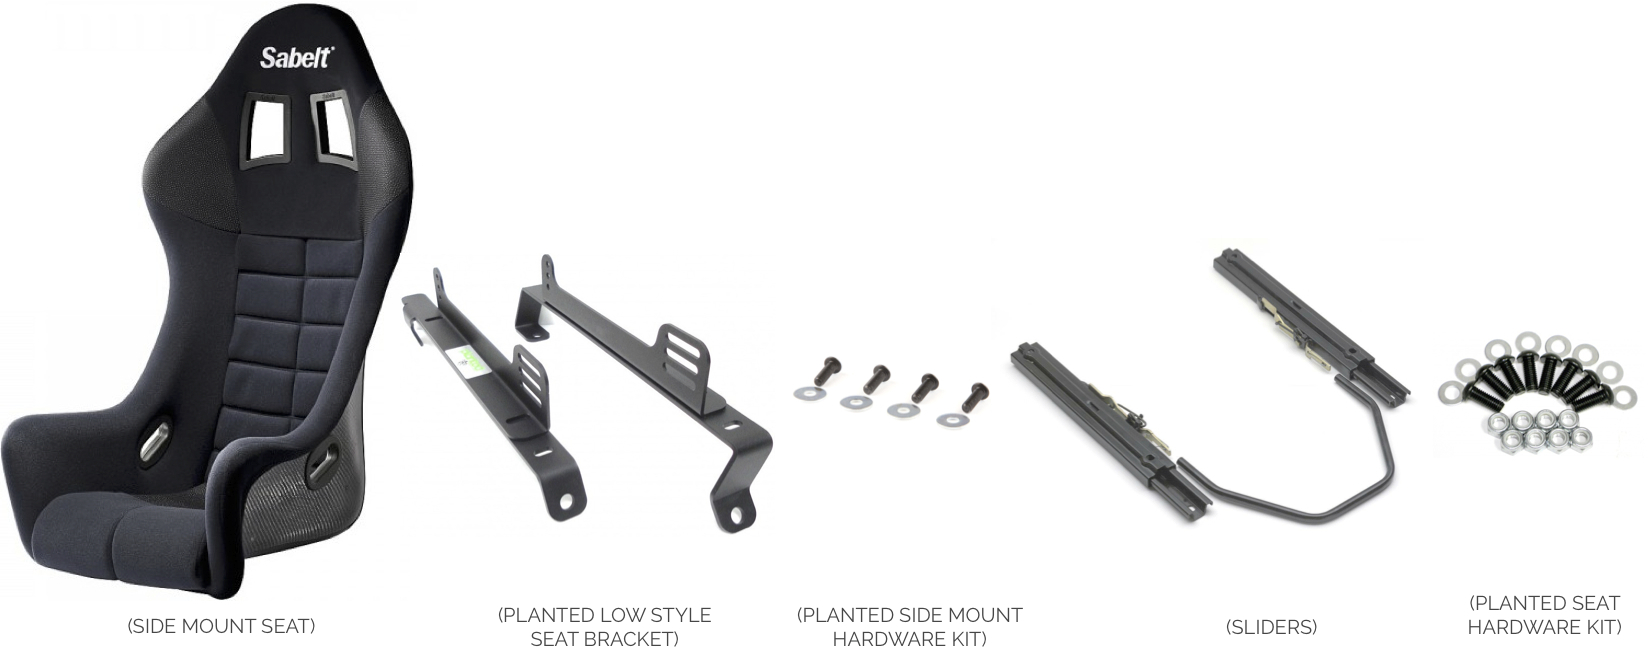 Side Mount Seat with Sliders onto Low Style Seat Bracket- Installation Instructions